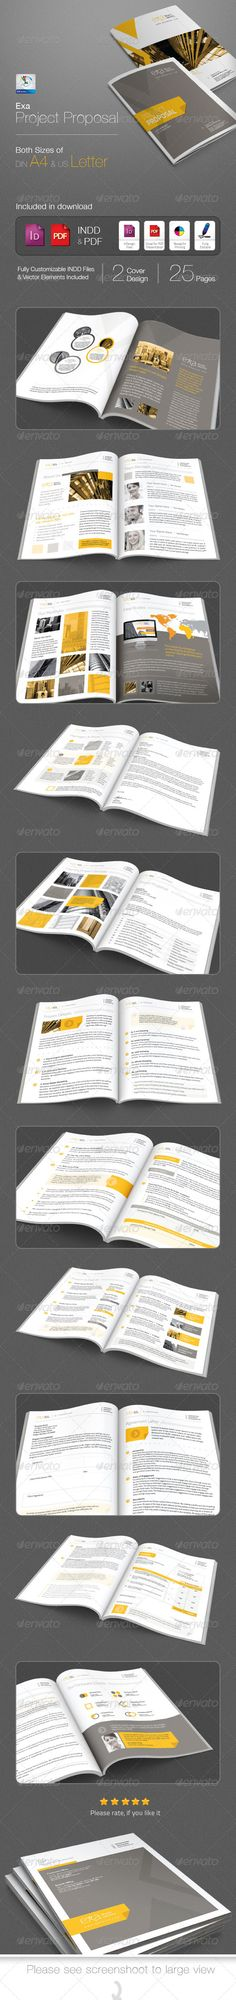 Proposal V3 Proposals, Proposal templates and Brochures - download business proposal template